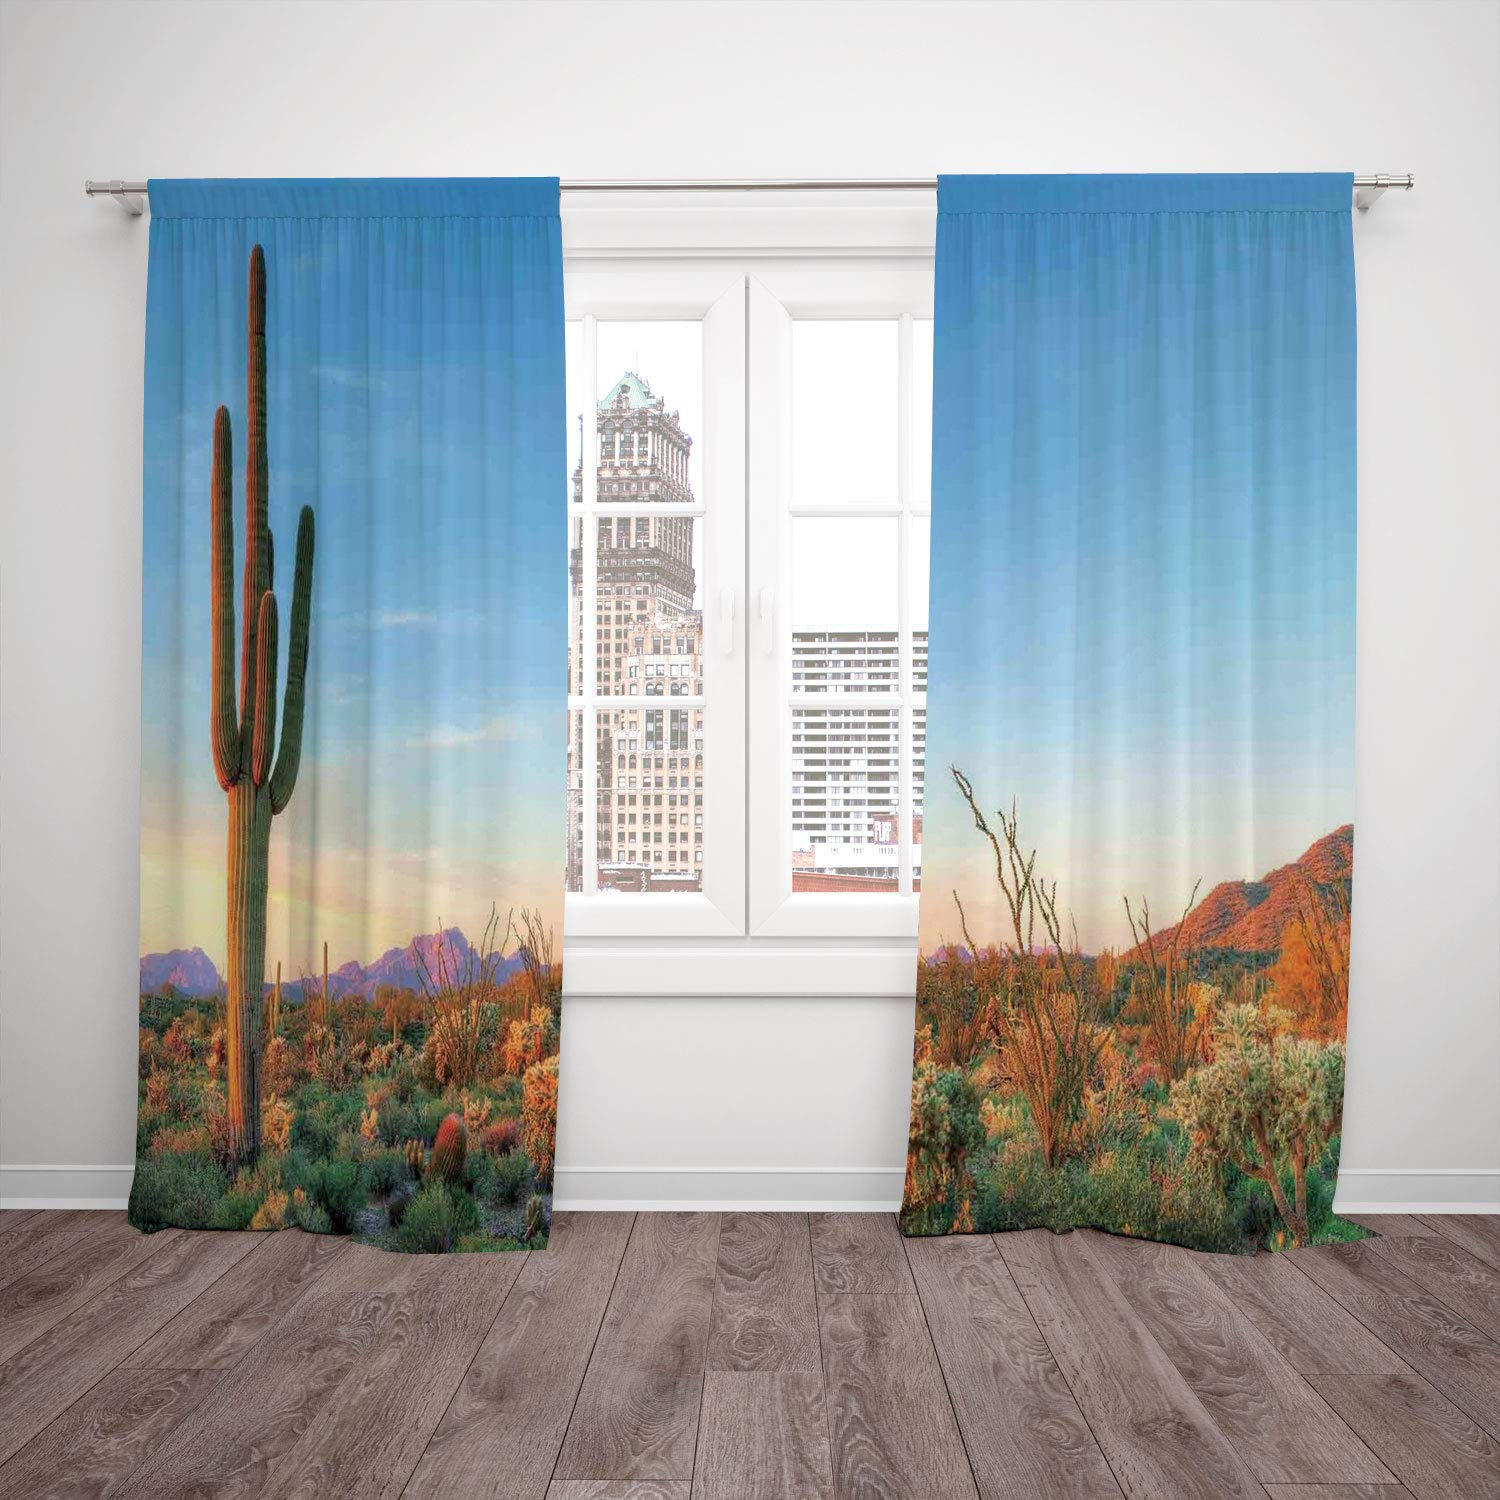 2 Panel Set Satin Window Drapes Kitchen Curtains,Saguaro Cactus Decor Sun Goes Down in Desert Prickly pear Cactus Southwest Texas National Park Orange Blue Green,for Bedroom Living Room Dorm Kitchen C